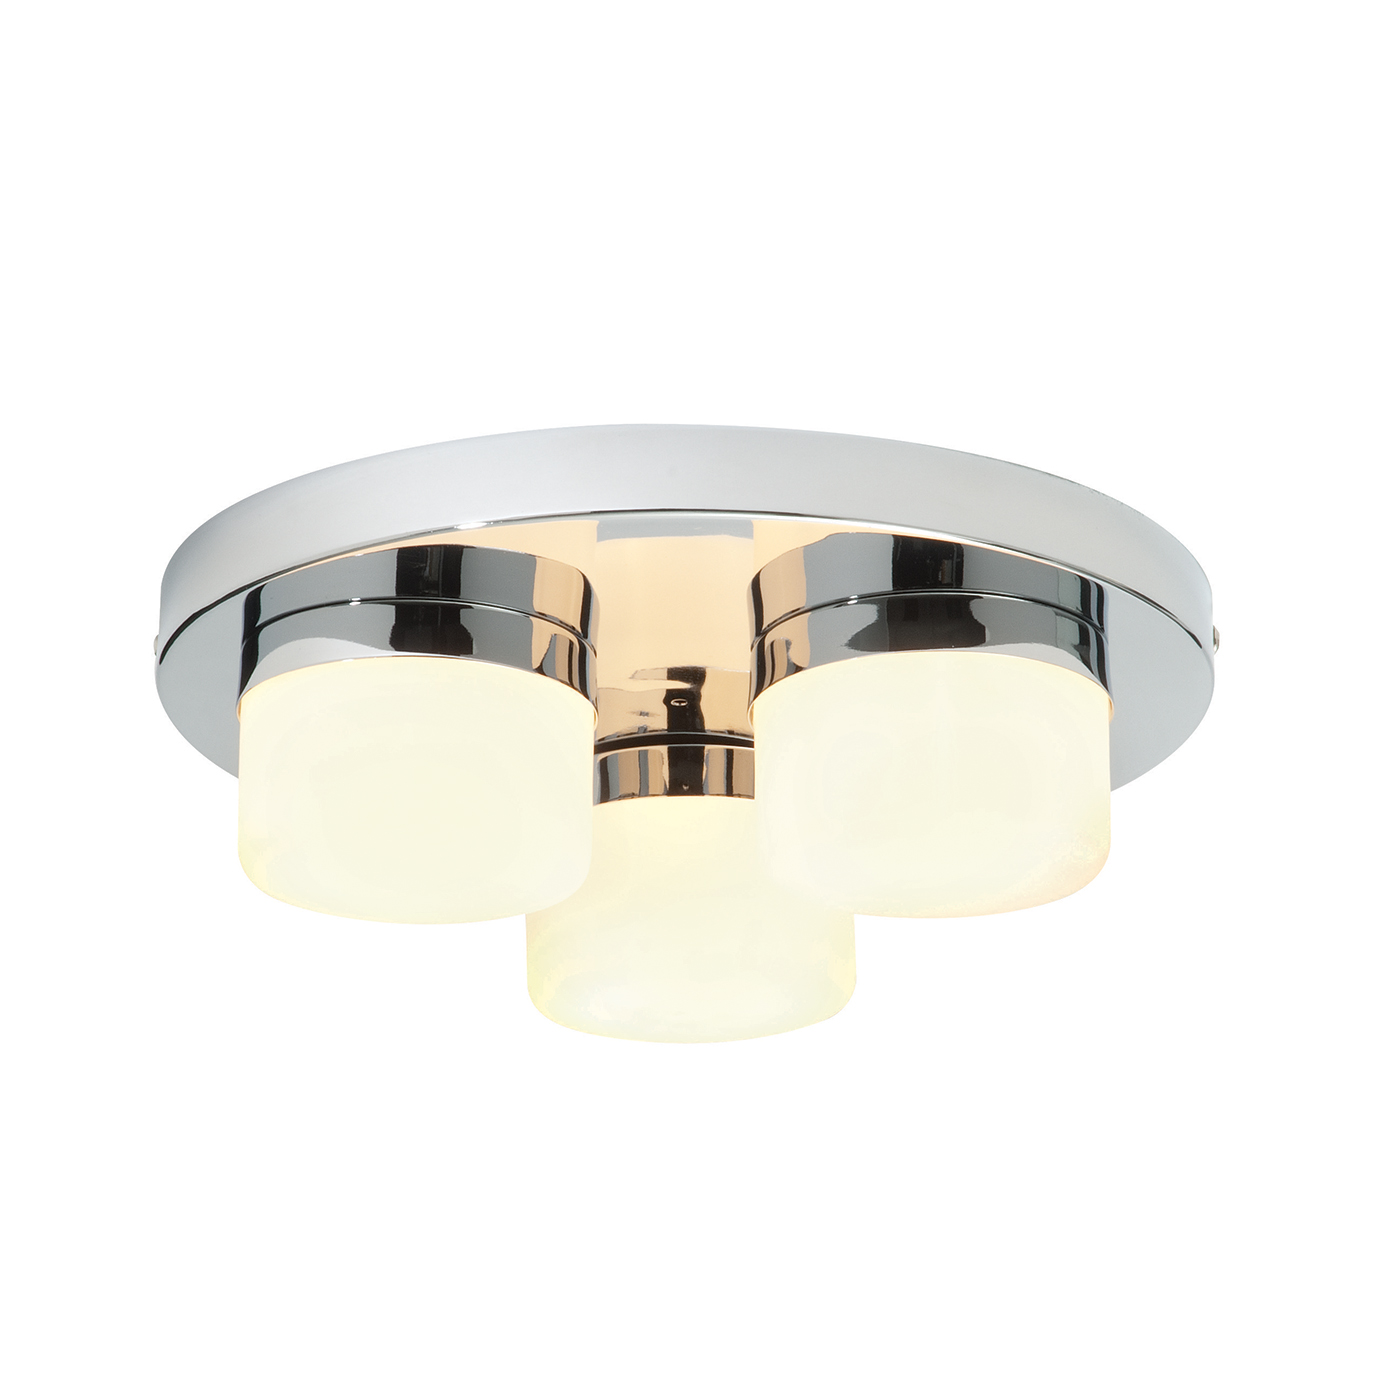 Endon Pure 3lt flush bathroom ceiling light IP44 28W chrome opal glass Thumbnail 1